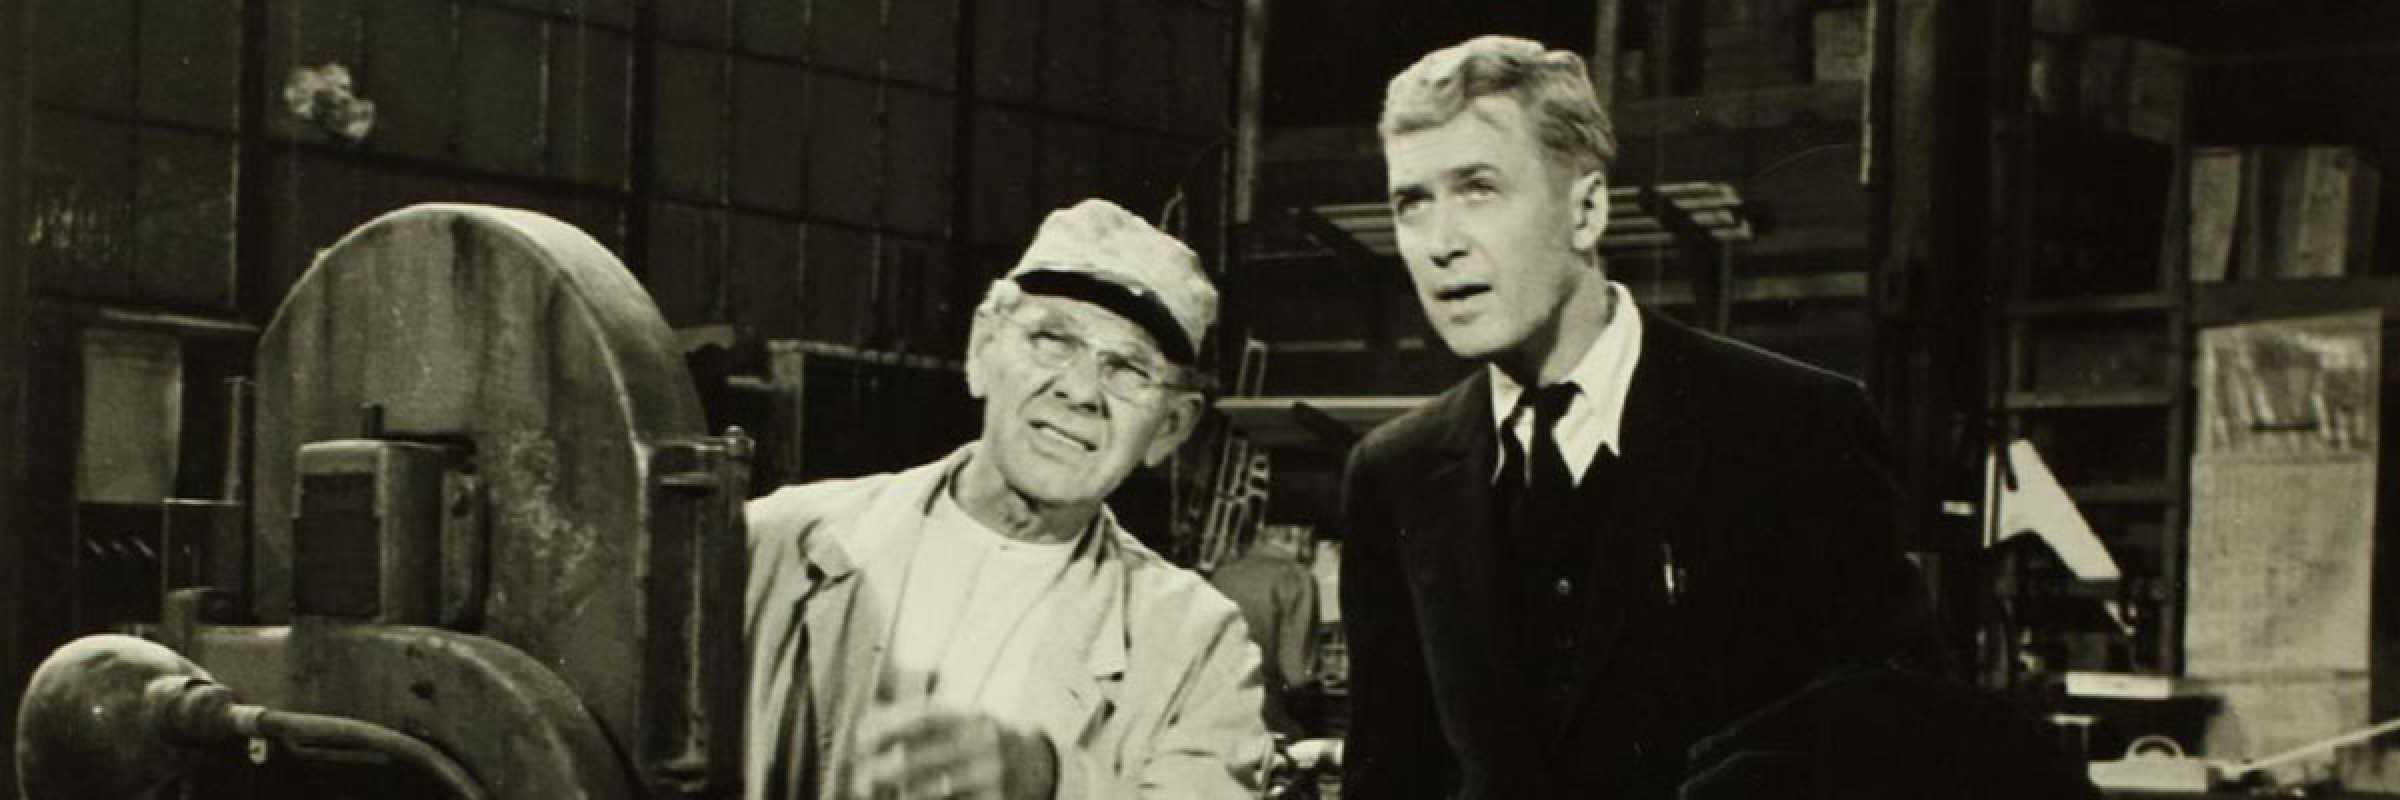 "The producer Leland Hayward with the actor Jimmy Sterar in the film ""The spirit of Saint Louis"""